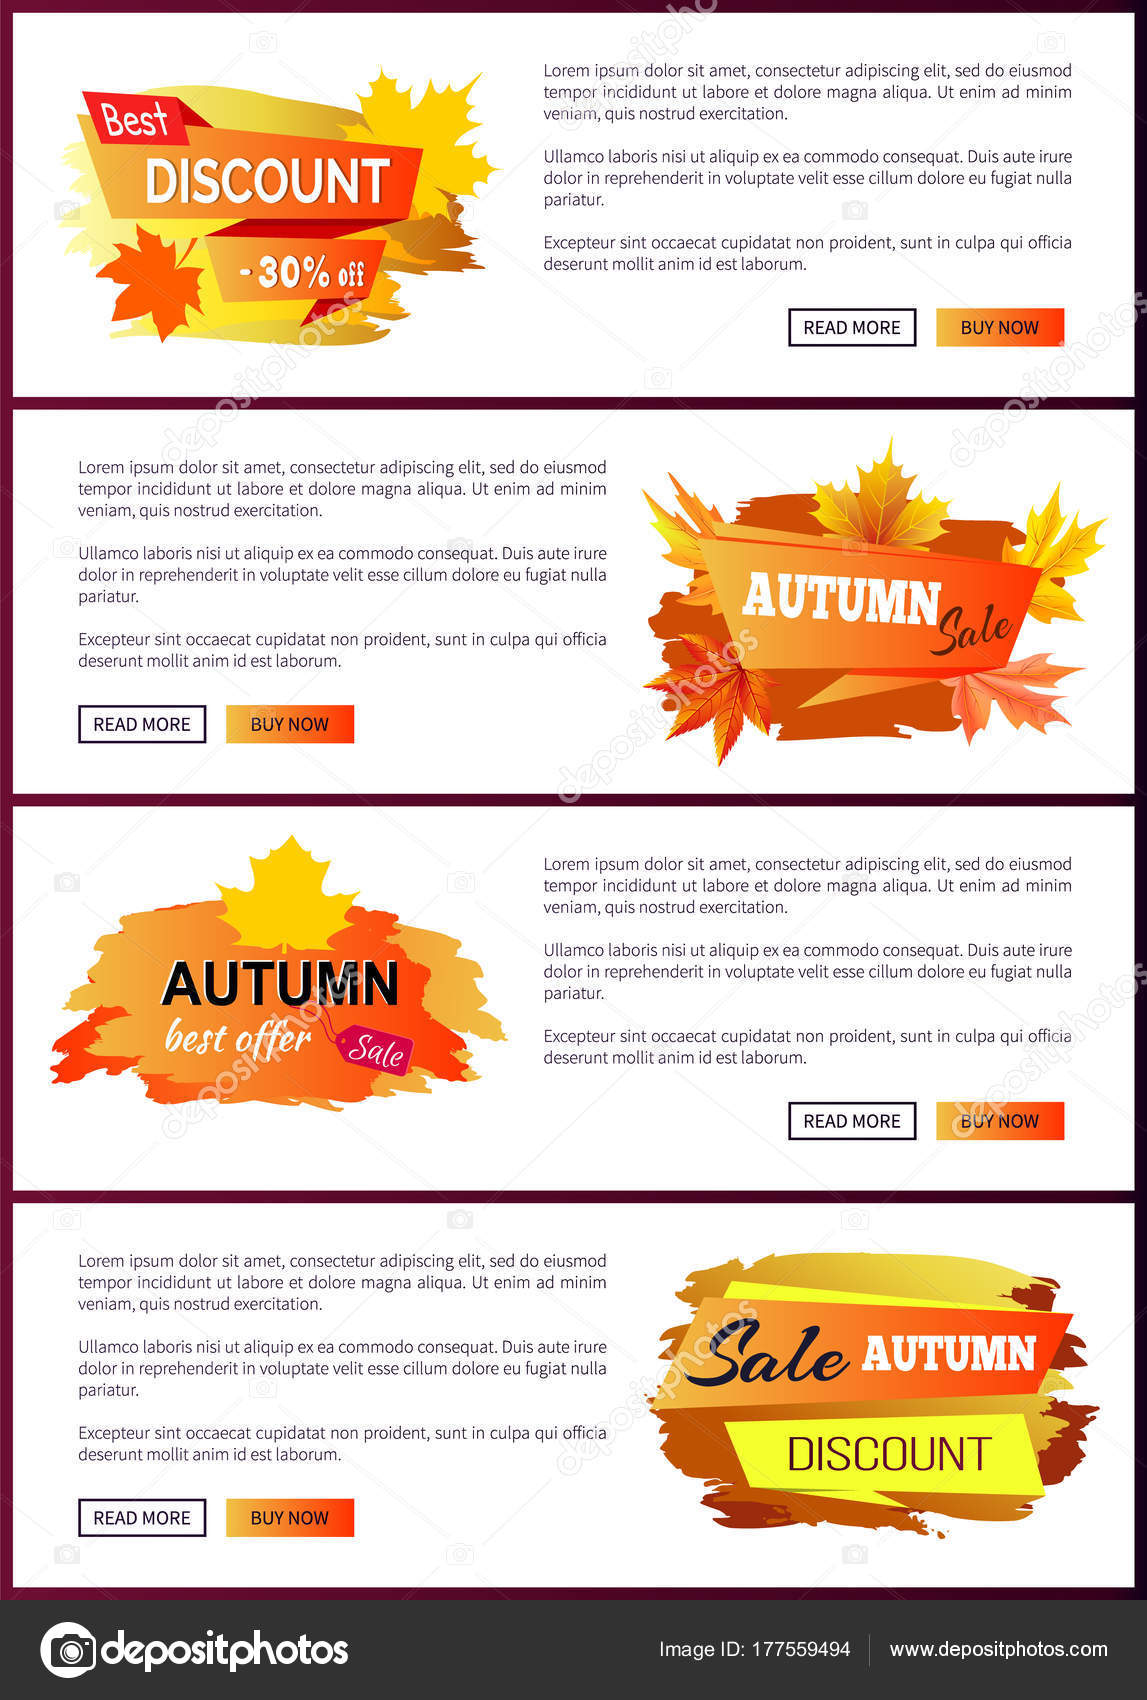 set of leaflets with foliage autumn big sale 2017 best offer special price discounts on fall collection web banners buttons read more and buy now vector